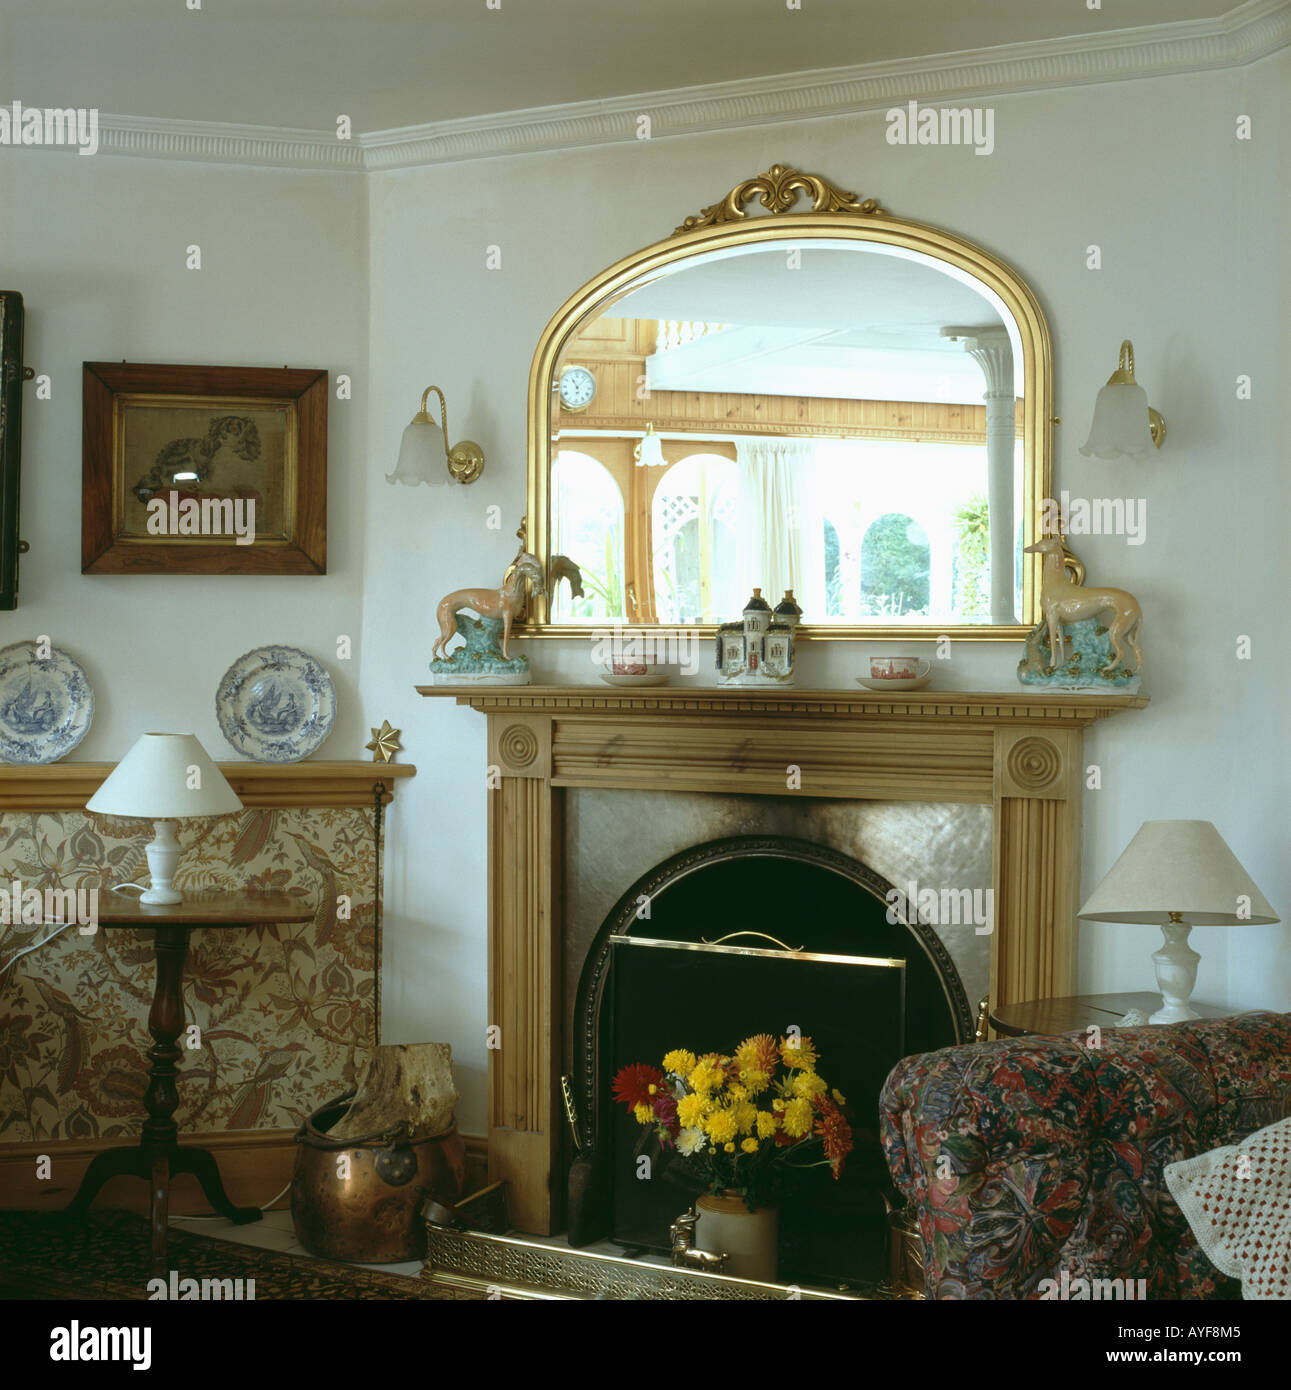 walls using elegant with mirror and over important pieces ornate as black wall mirrors the fireplace bedroom